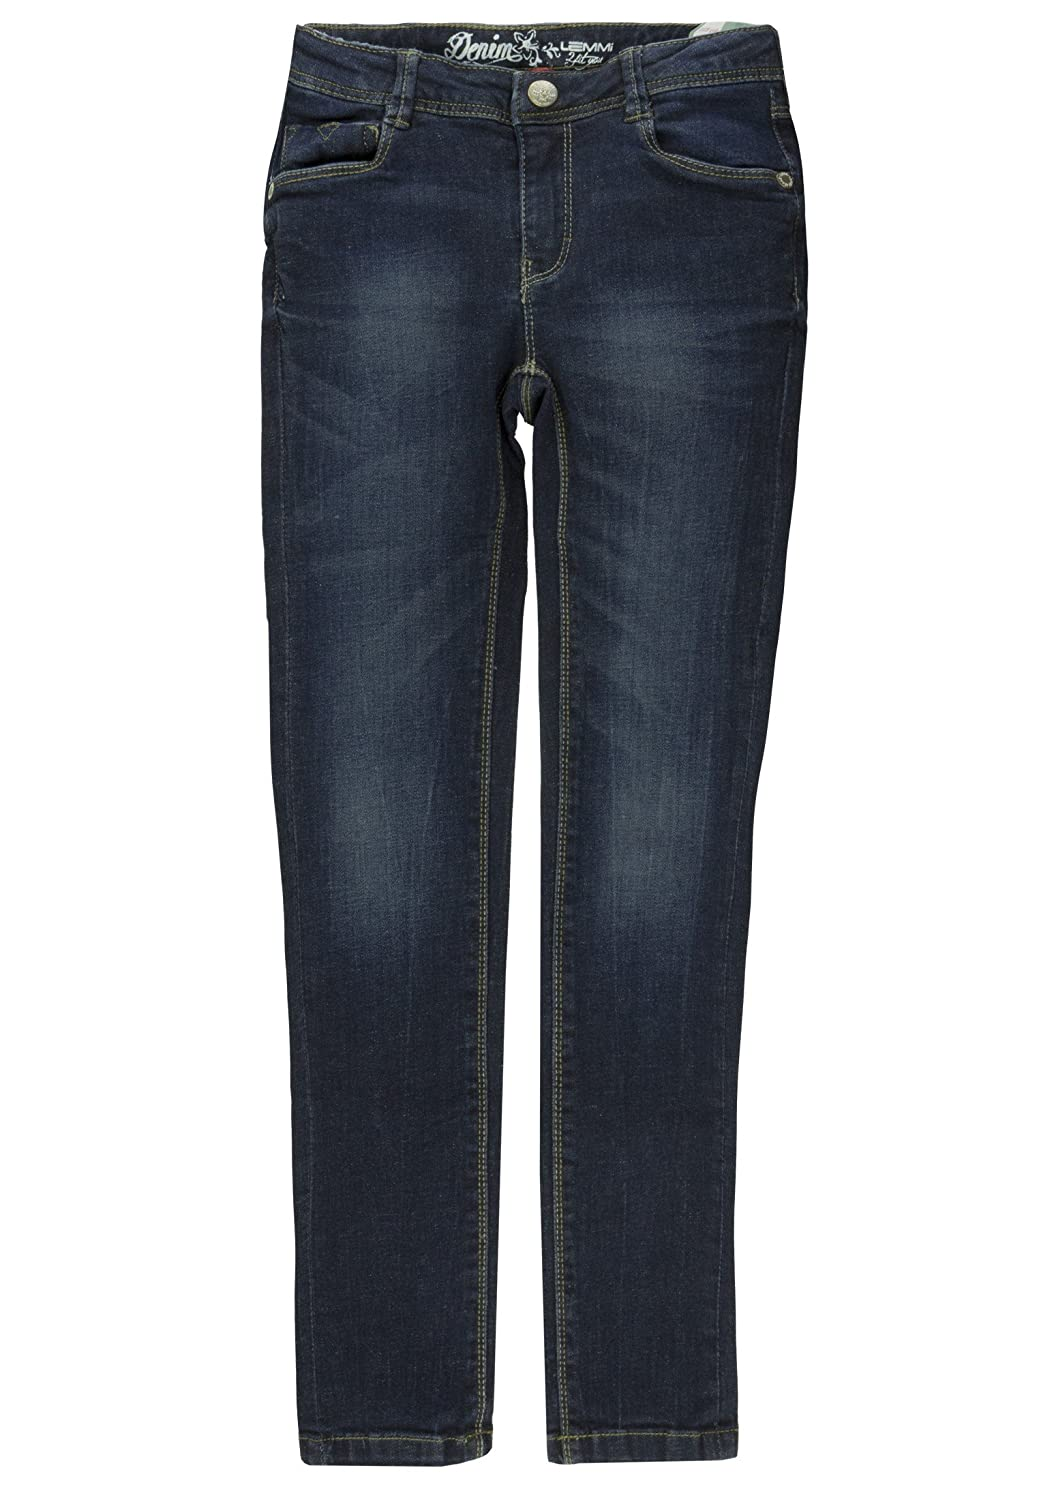 Lemmi Jeggings Jeans Girls Slim, Jeggings per Bambine e Ragazze 9948009